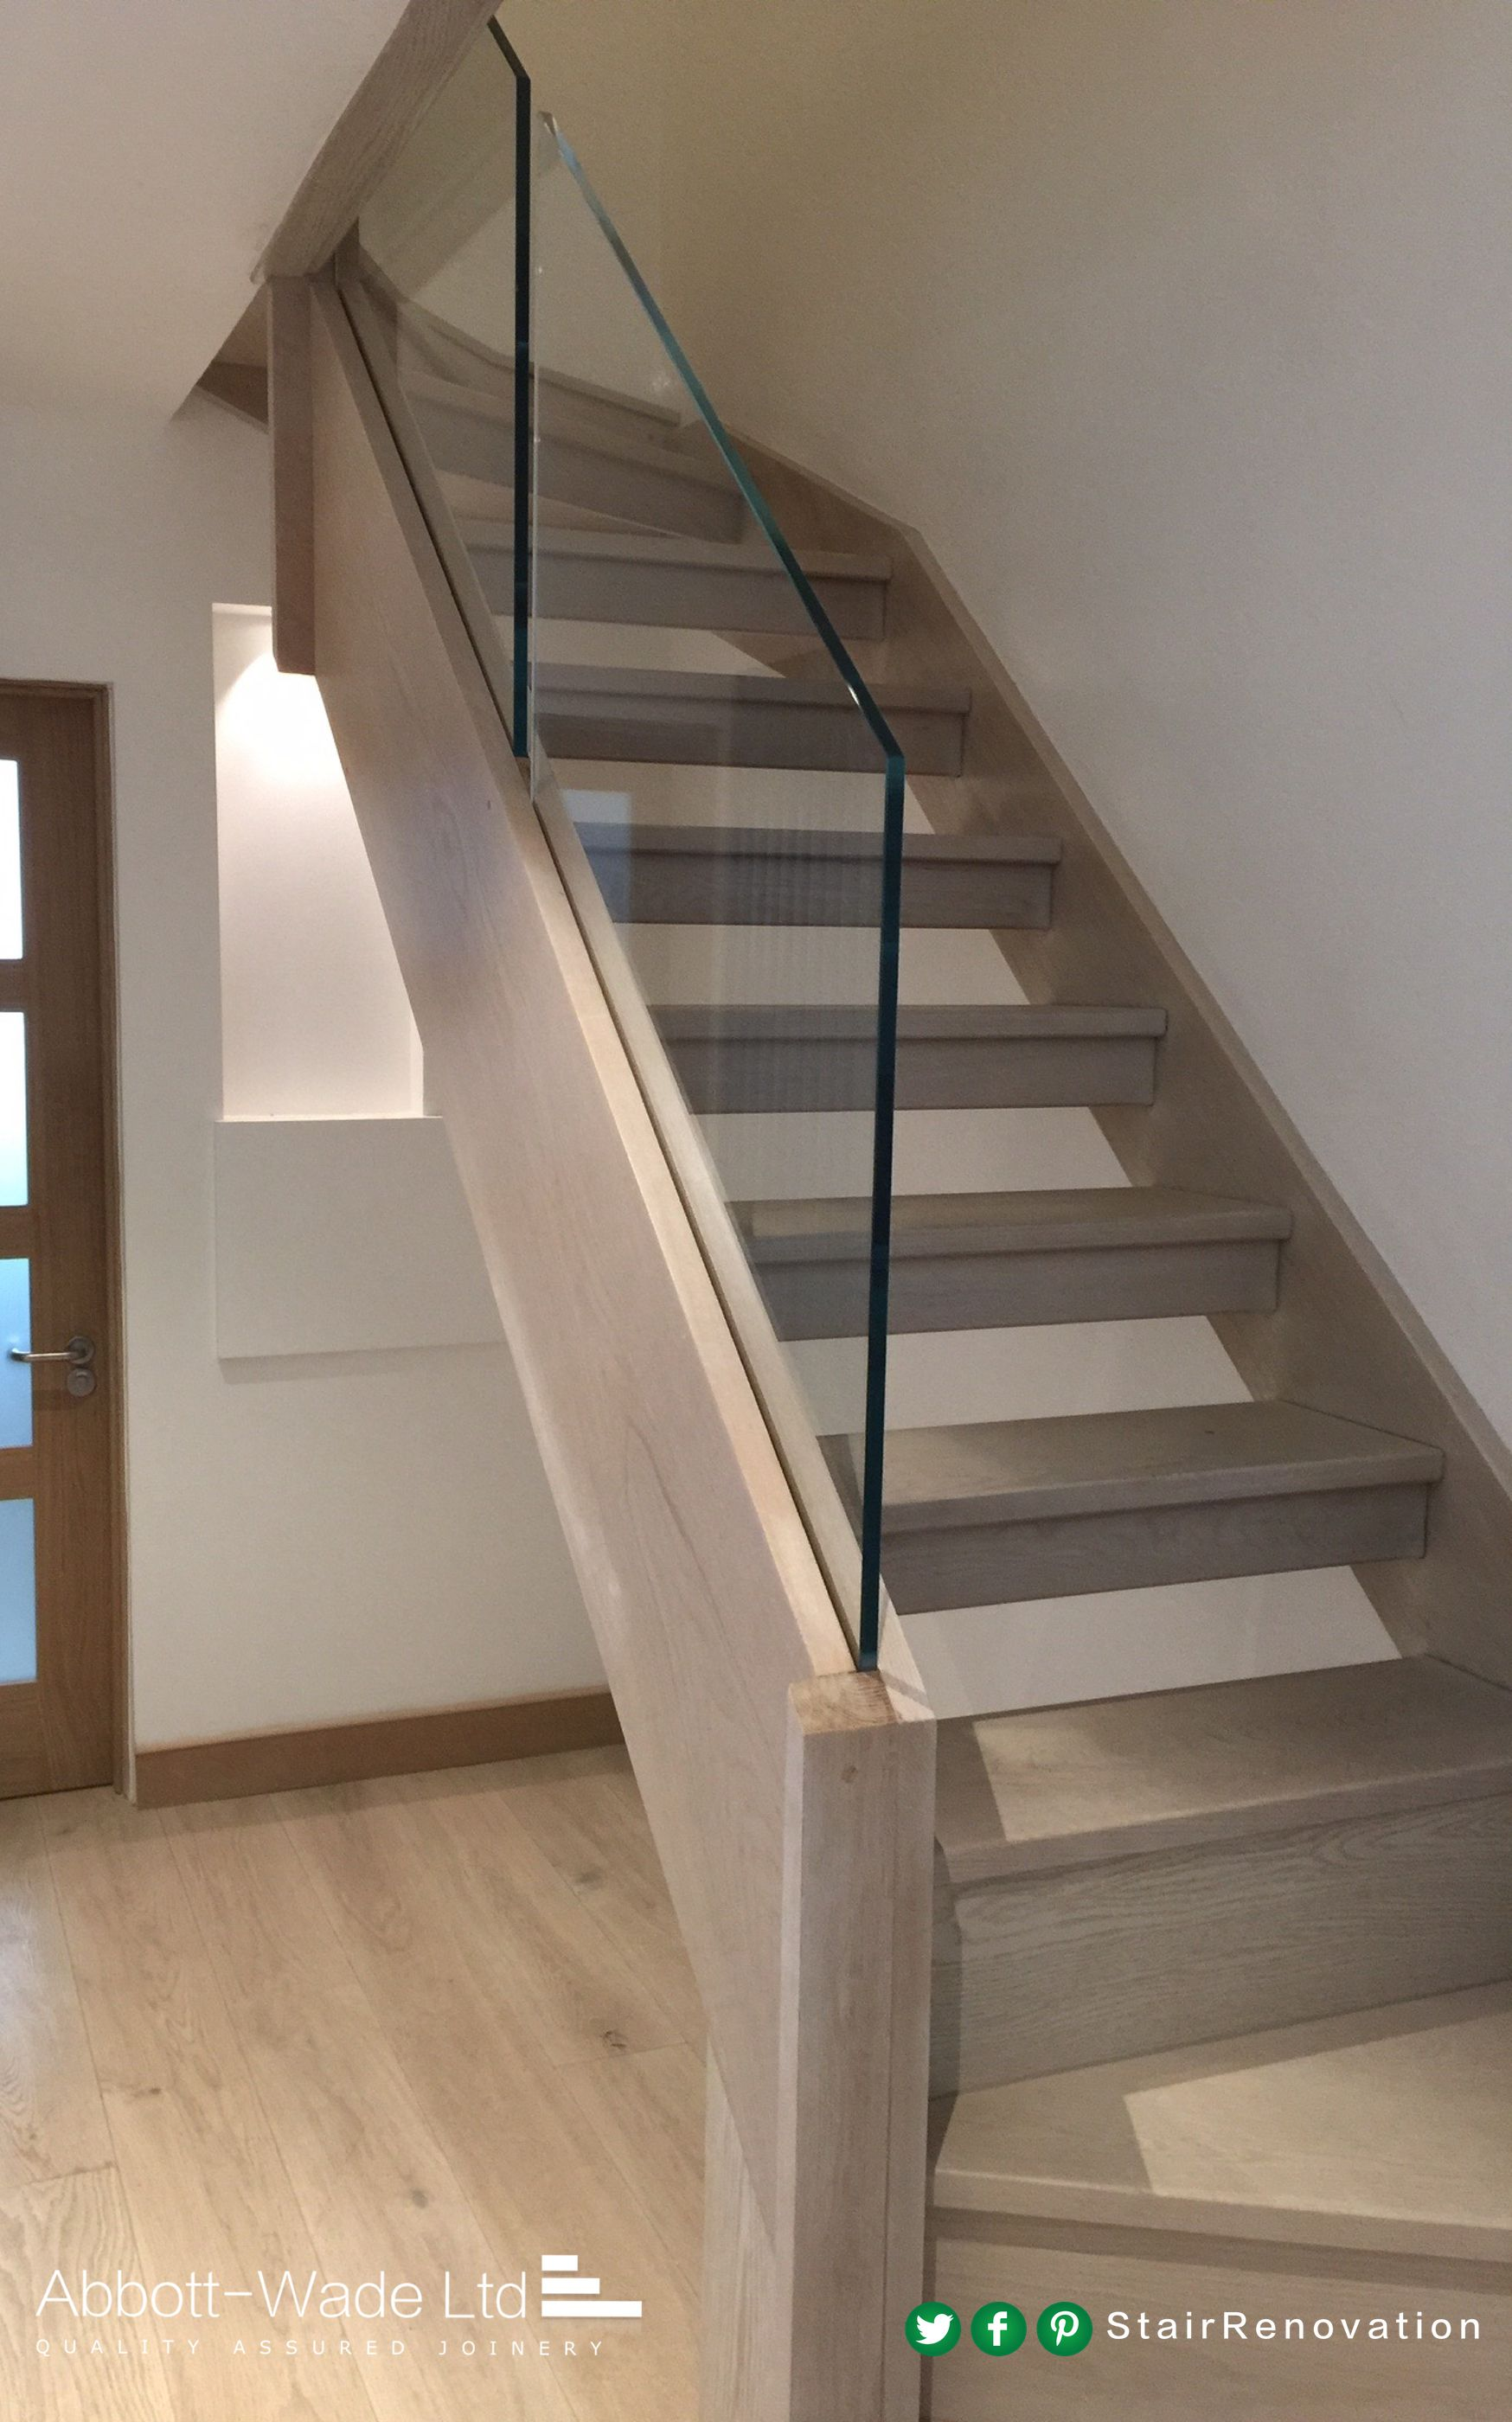 Abbott Wade Open Tread Stained Oak Staircase With Frameless Glass   Frameless Glass Stair Railing   Metal   Contemporary   Seamless Glass   Glass U Shape   Detail